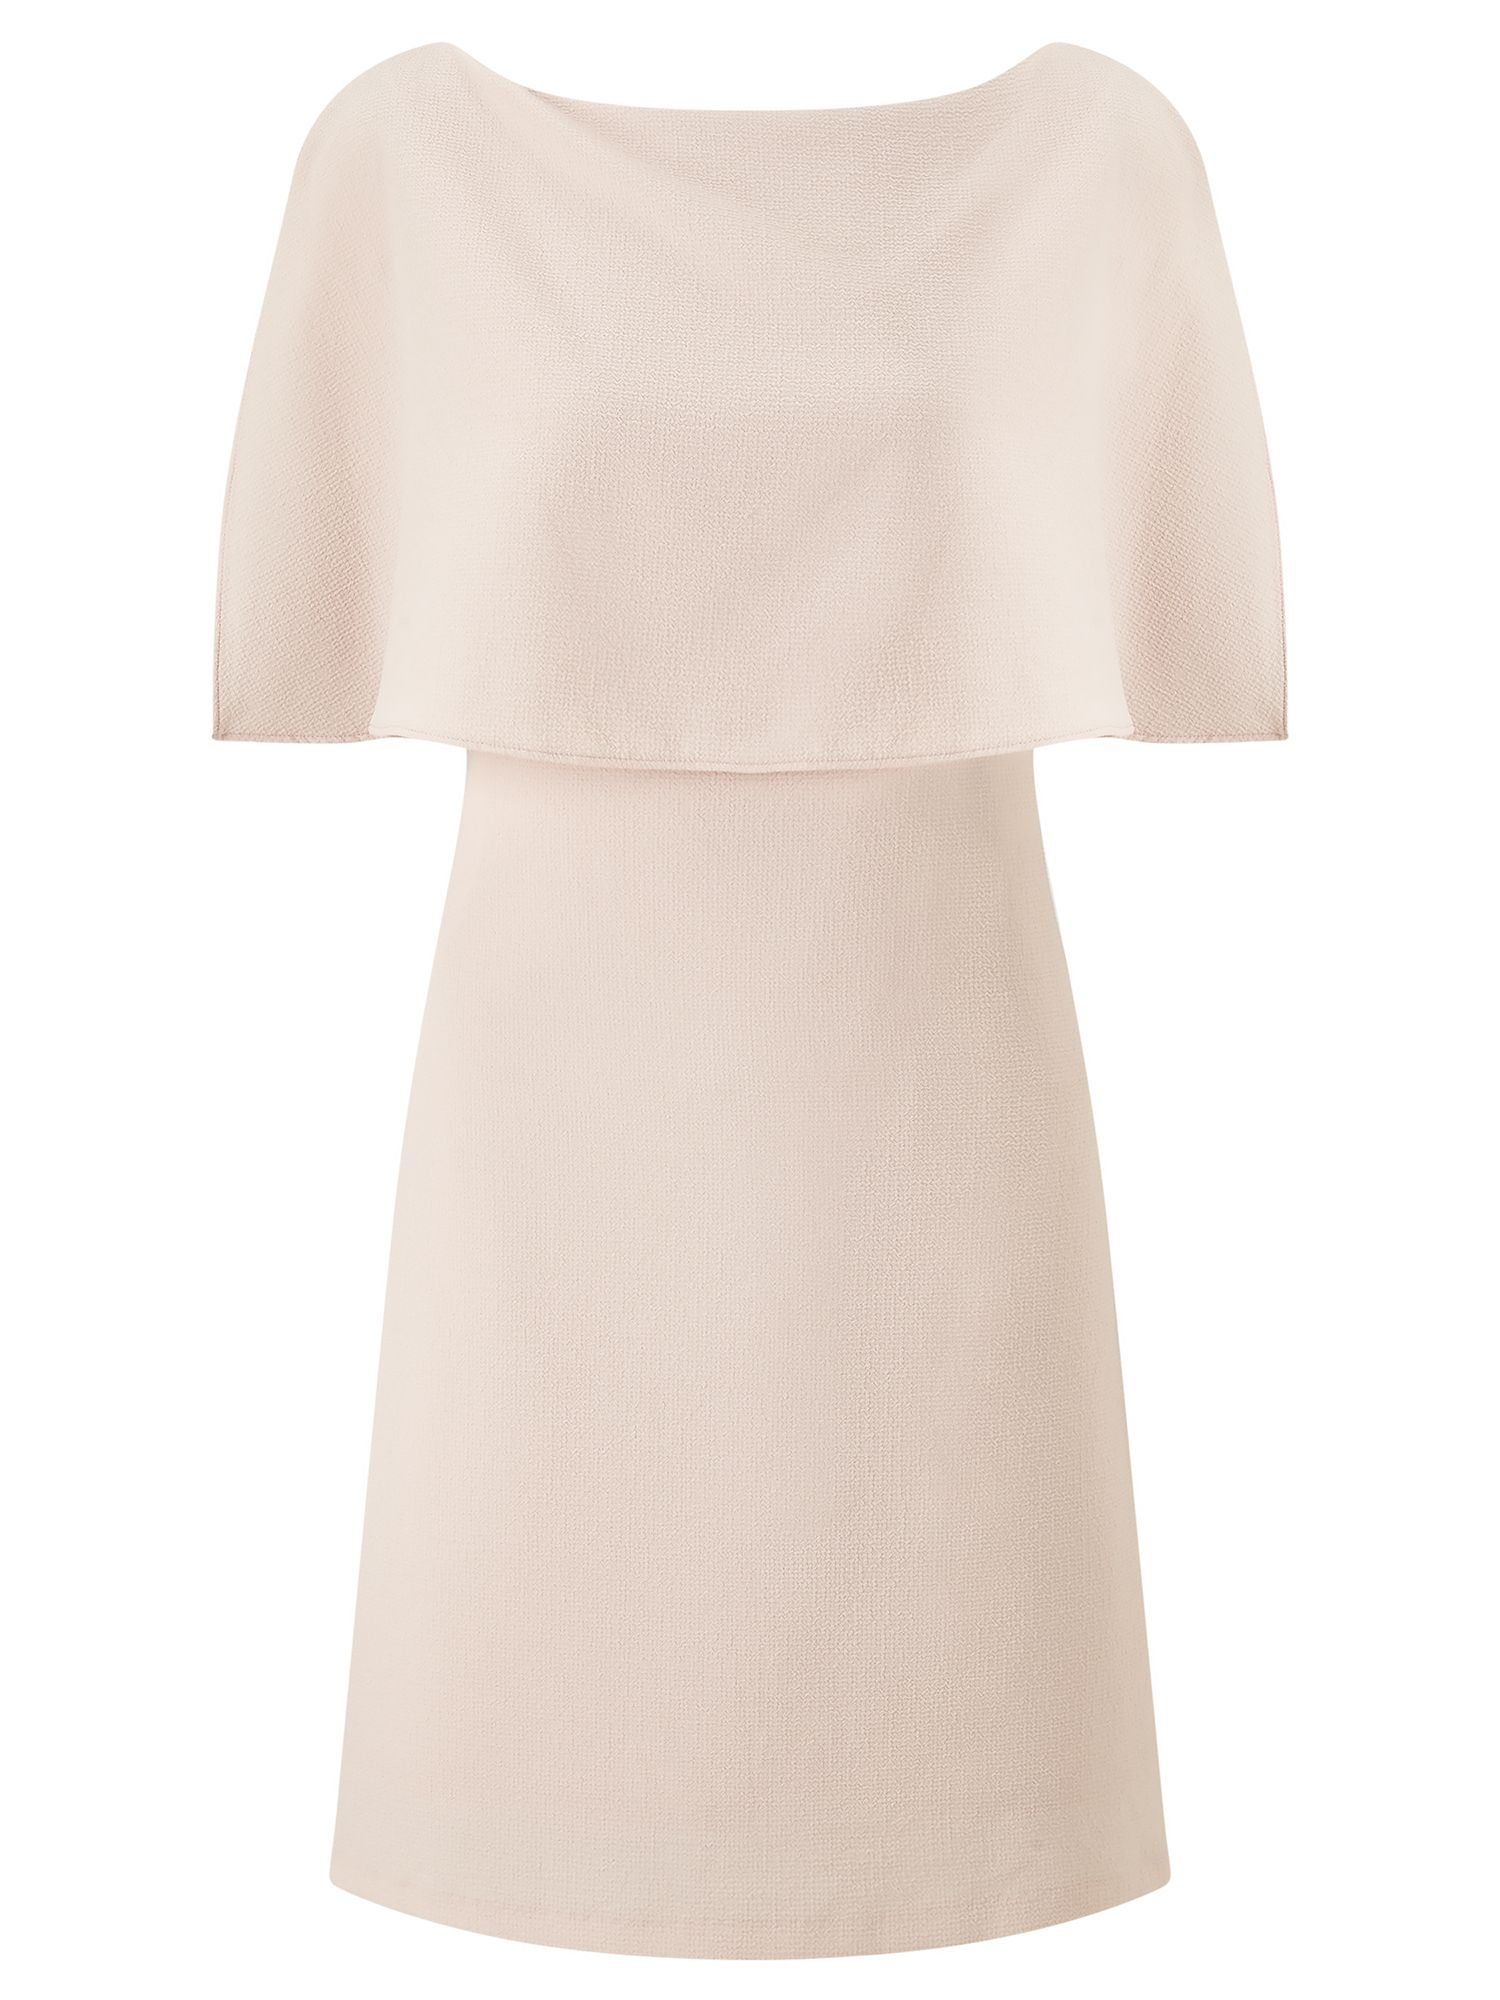 Adrianna Papell Popover dress, Pink